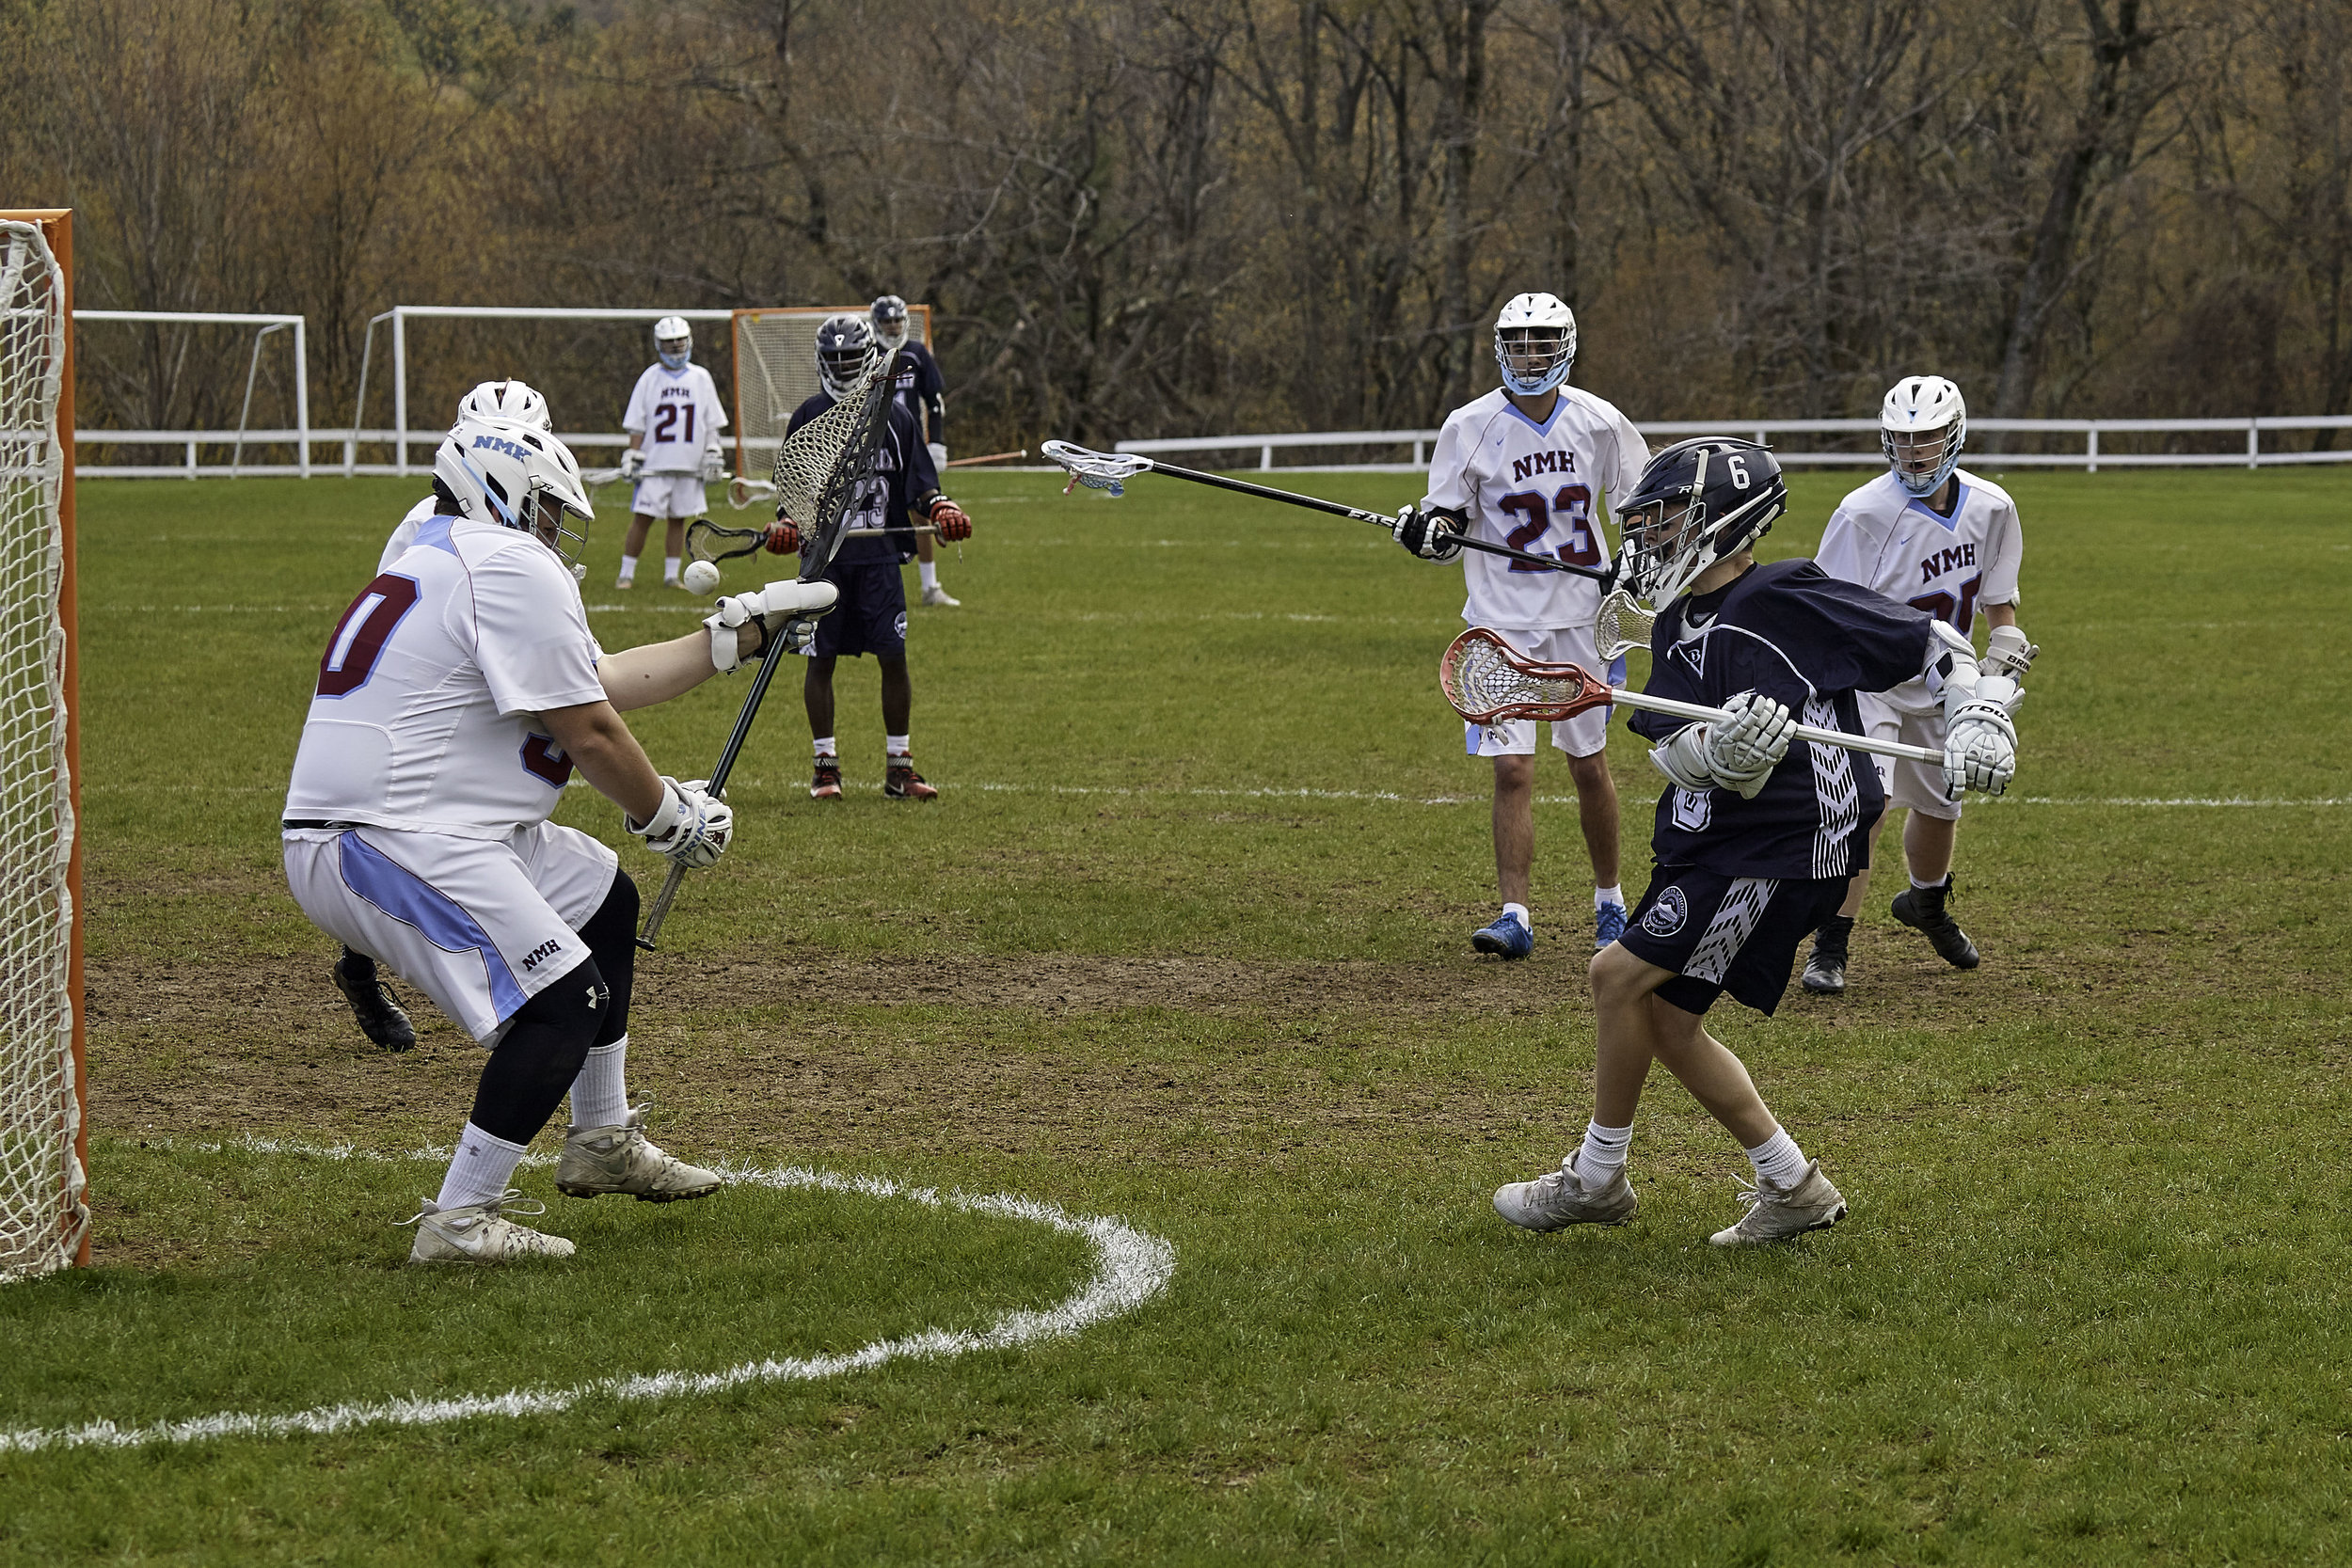 Boys Lax vs Northfield Mount Hermon JV - May 15 2019 - 0019.jpg